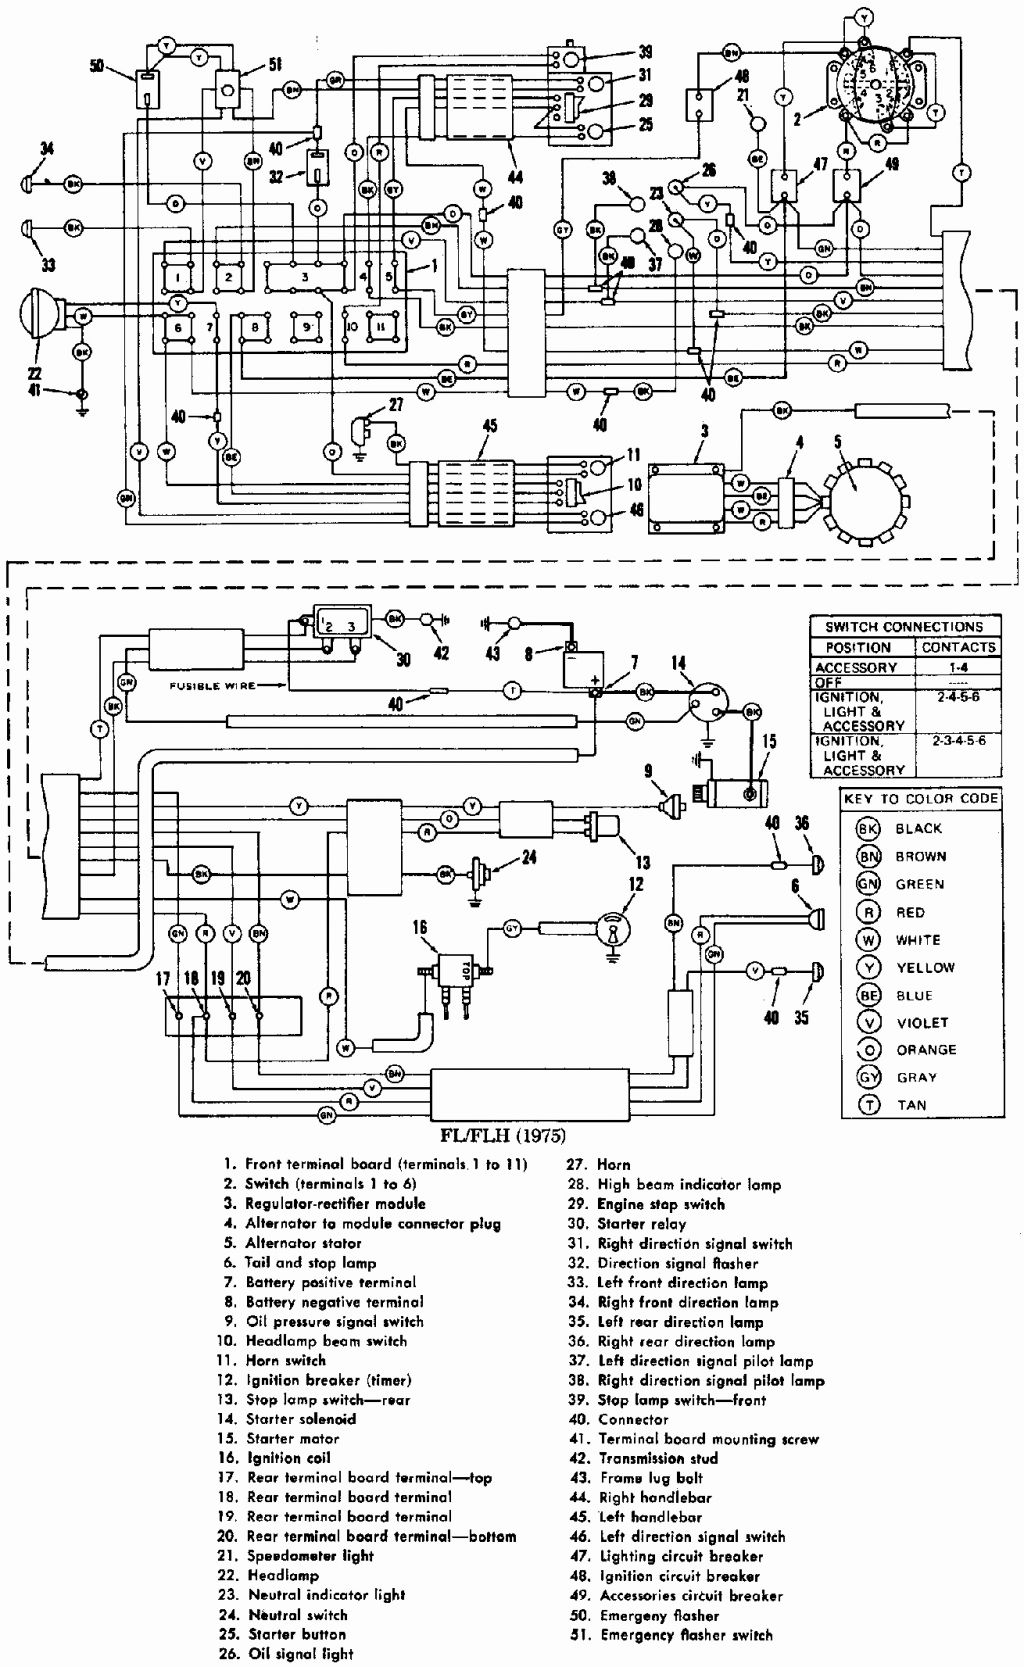 ford speaker wiring diagram, harley davidson fuel pump problems, harley davidson audio input, harley davidson window, harley davidson rims, harley davidson stereo amplifier, sony speaker wiring diagram, harley davidson engine, mazda speaker wiring diagram, harley davidson closeouts, harley davidson turbo, harley davidson coolant, on harley davidson speaker wiring diagram 4